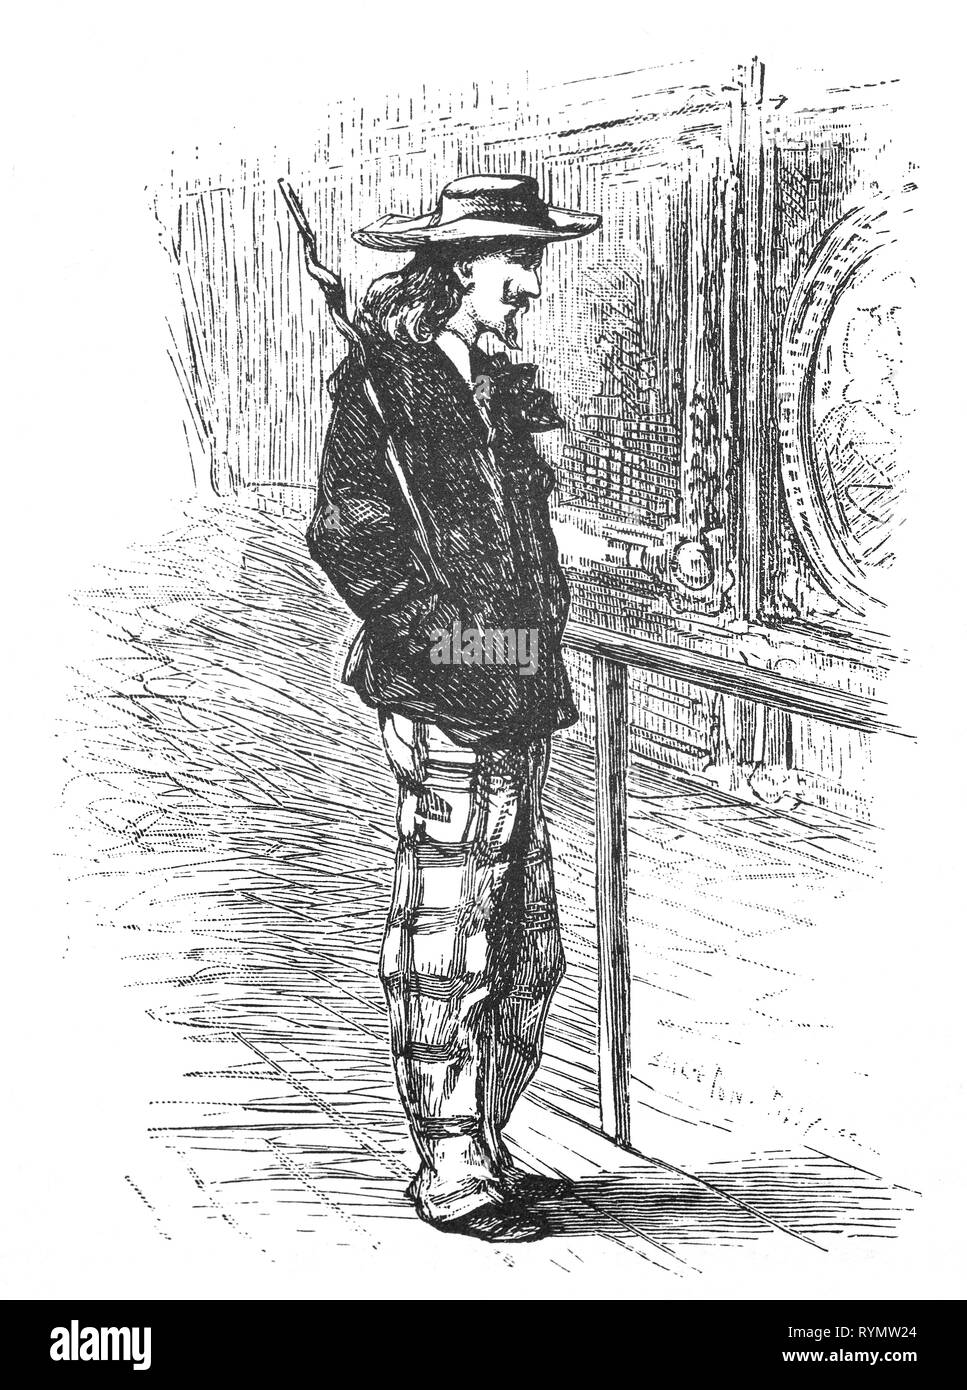 A young fashioable artist with broad-brimmed hat, wild hairs, big stick,  short jacket and checked trousers. From the Camera Obscura, a 19th Century collection of Dutch humorous-realistic essays, stories and sketches in which Hildebrand, the author, takes an ironic look at the behavior of the 'well-to-do', finding  them bourgeois and without a good word for them. - Stock Image